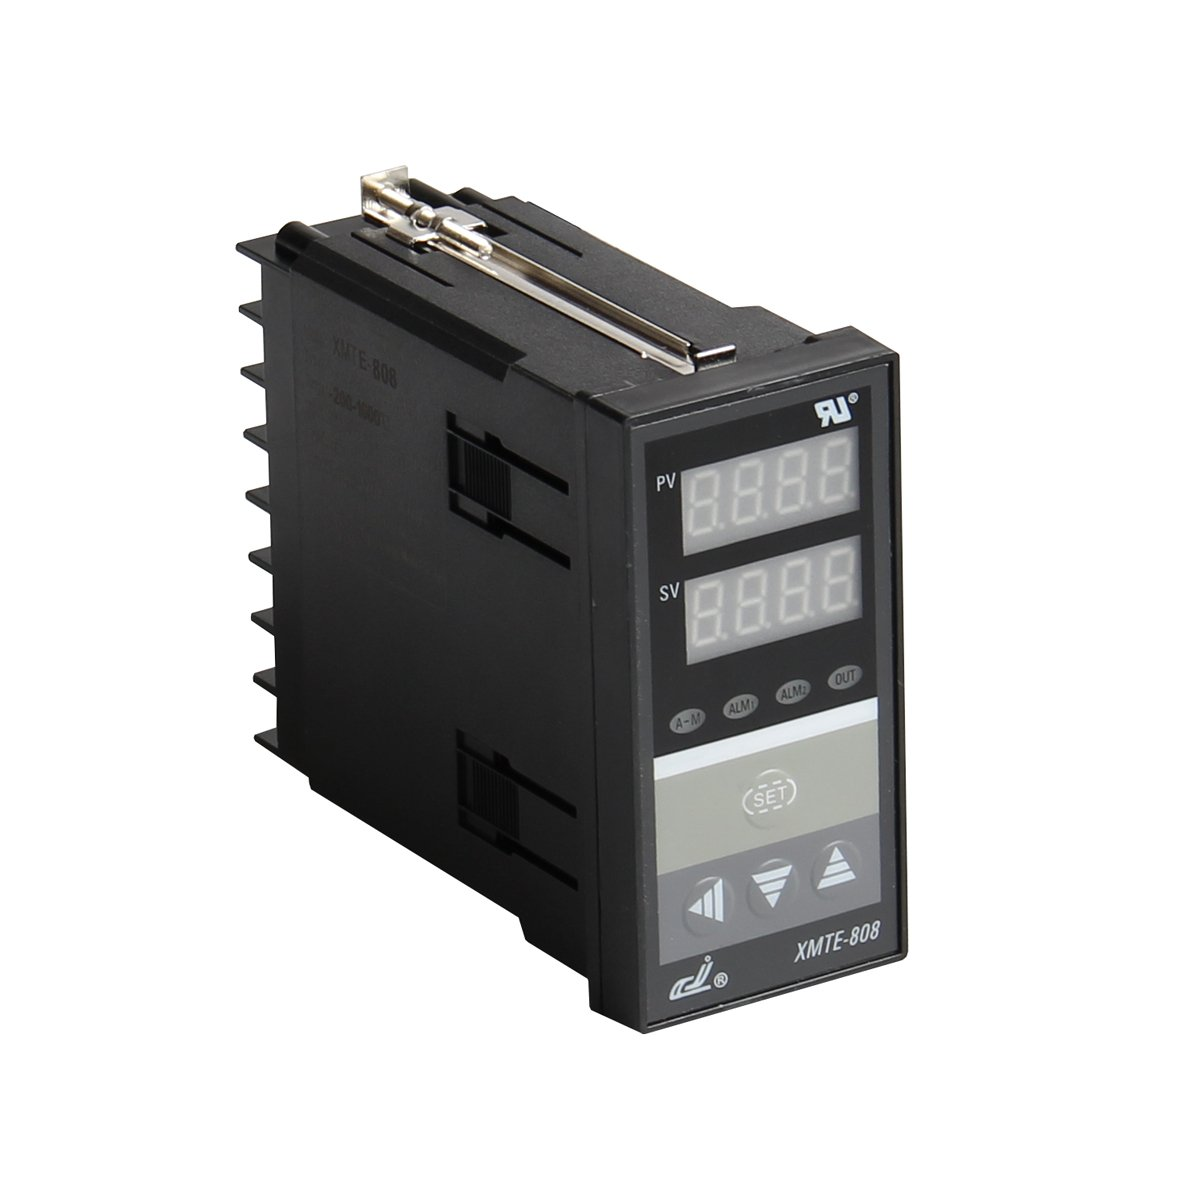 XMTE-808 Relay Output Digital LED Pid Temperature Controller with K Sensor: Amazon.com: Industrial & Scientific